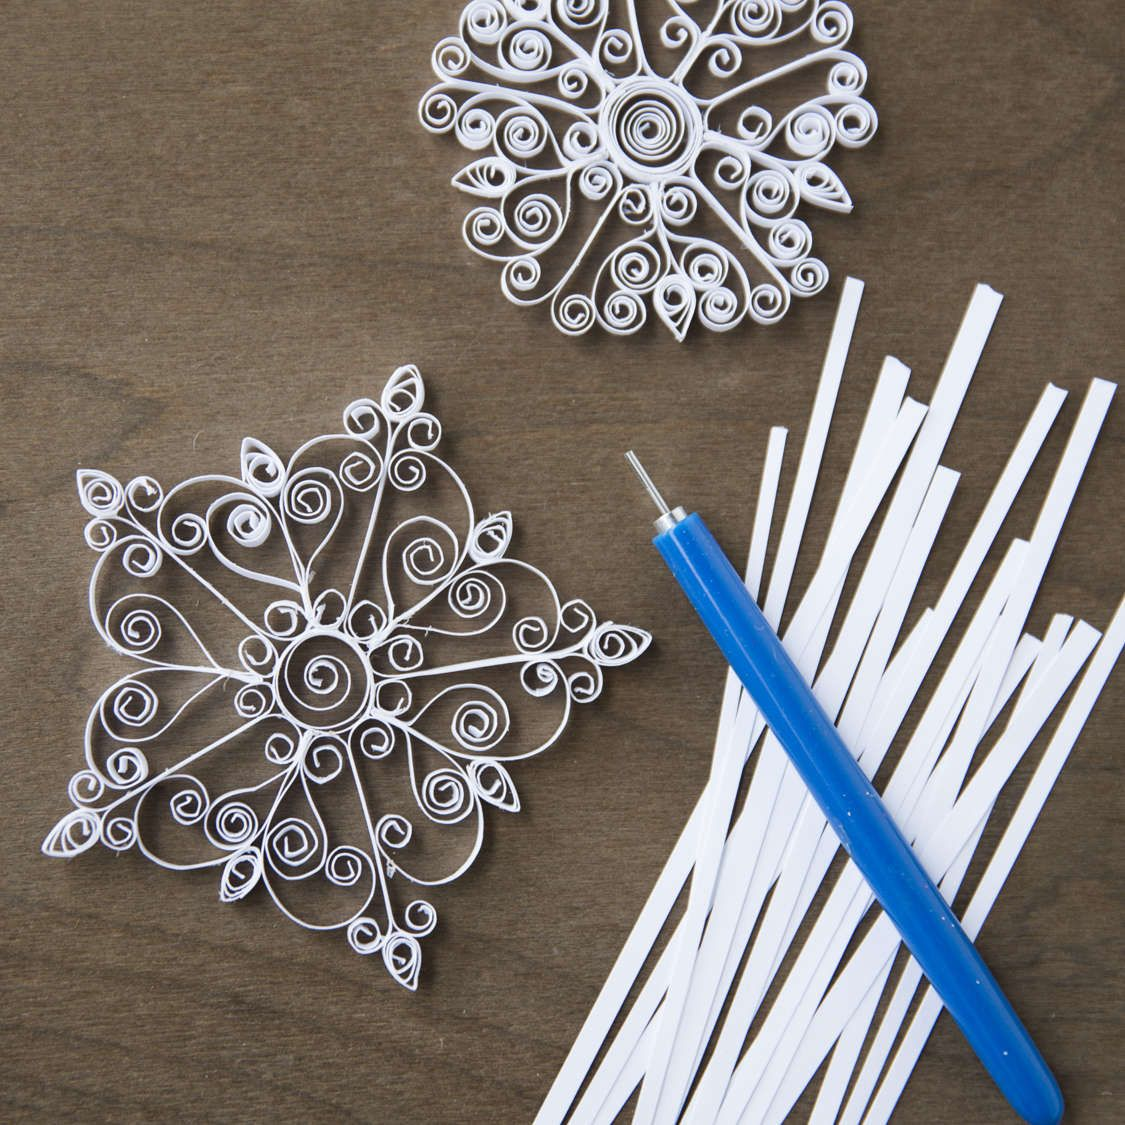 Make snowflake ornaments - Diy Mini Quilled Snowflake Kit 8 99 For The Tool Supplies Great Gift Idea